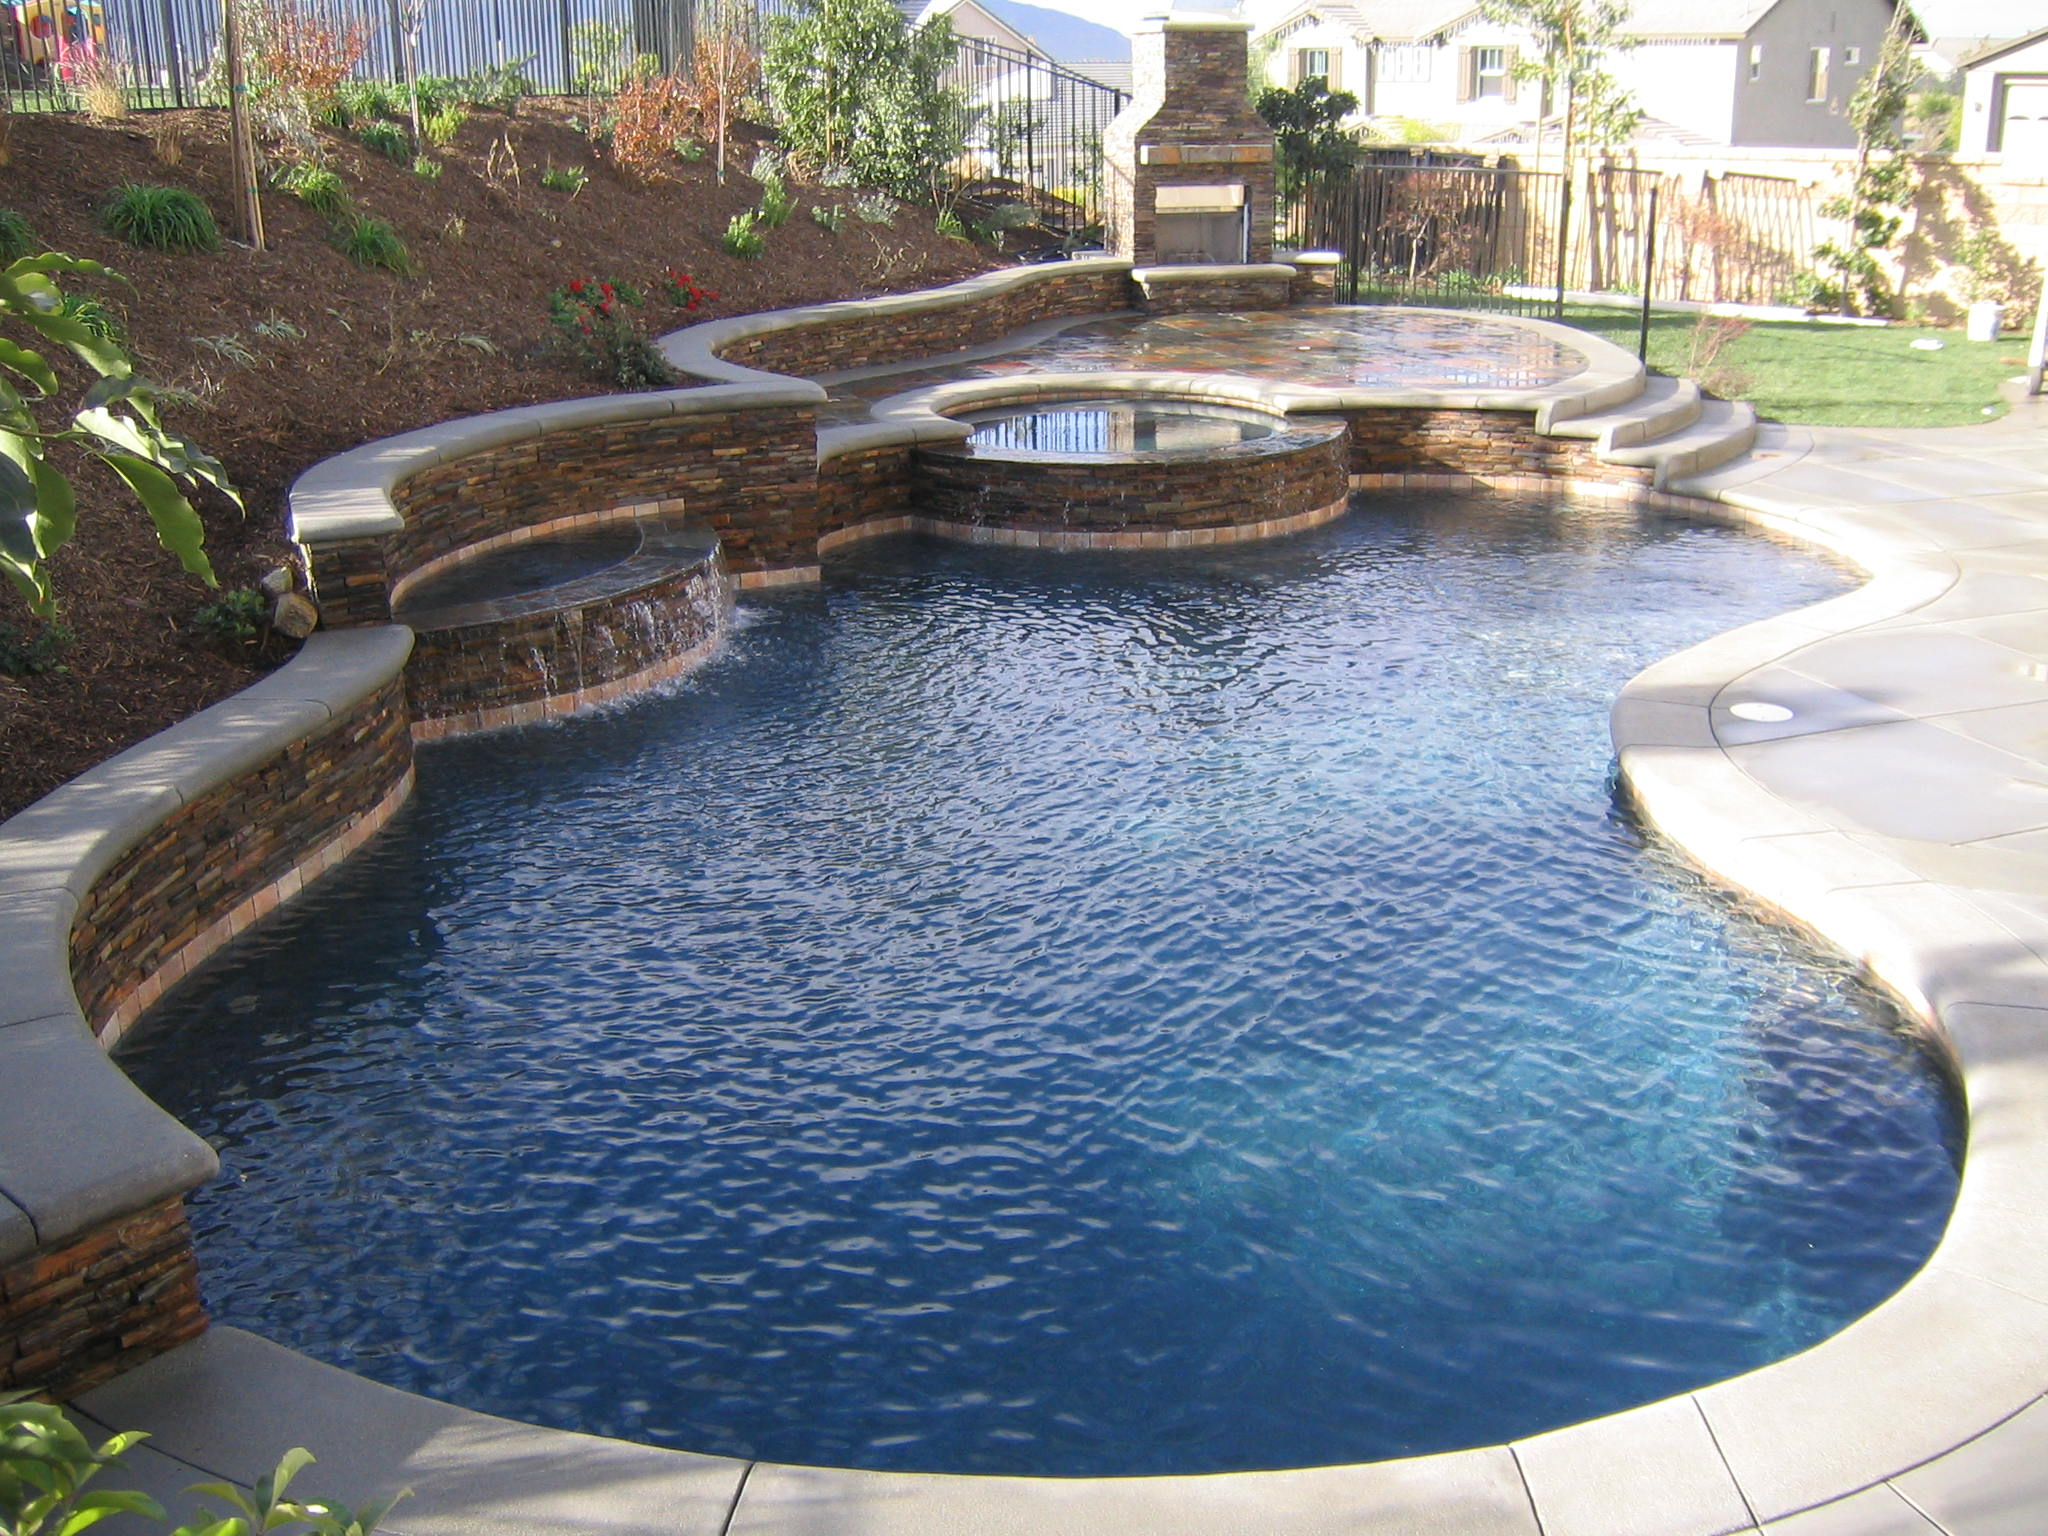 Pool design for small yards homesfeed for Small pools for small yards